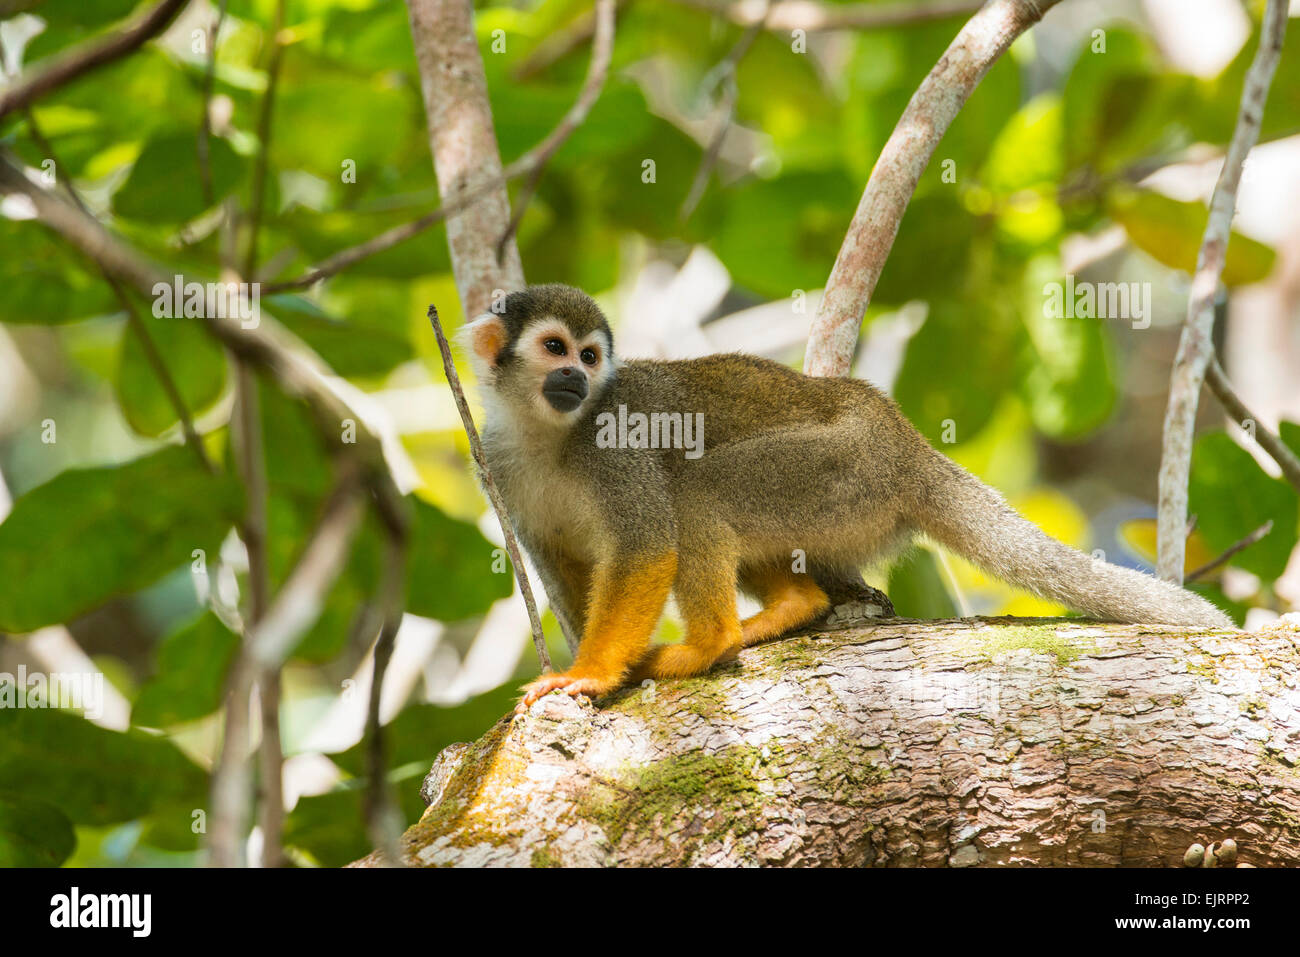 Squirrel monkey, Saimiri, Central Suriname Nature Reserve, Suriname - Stock Image